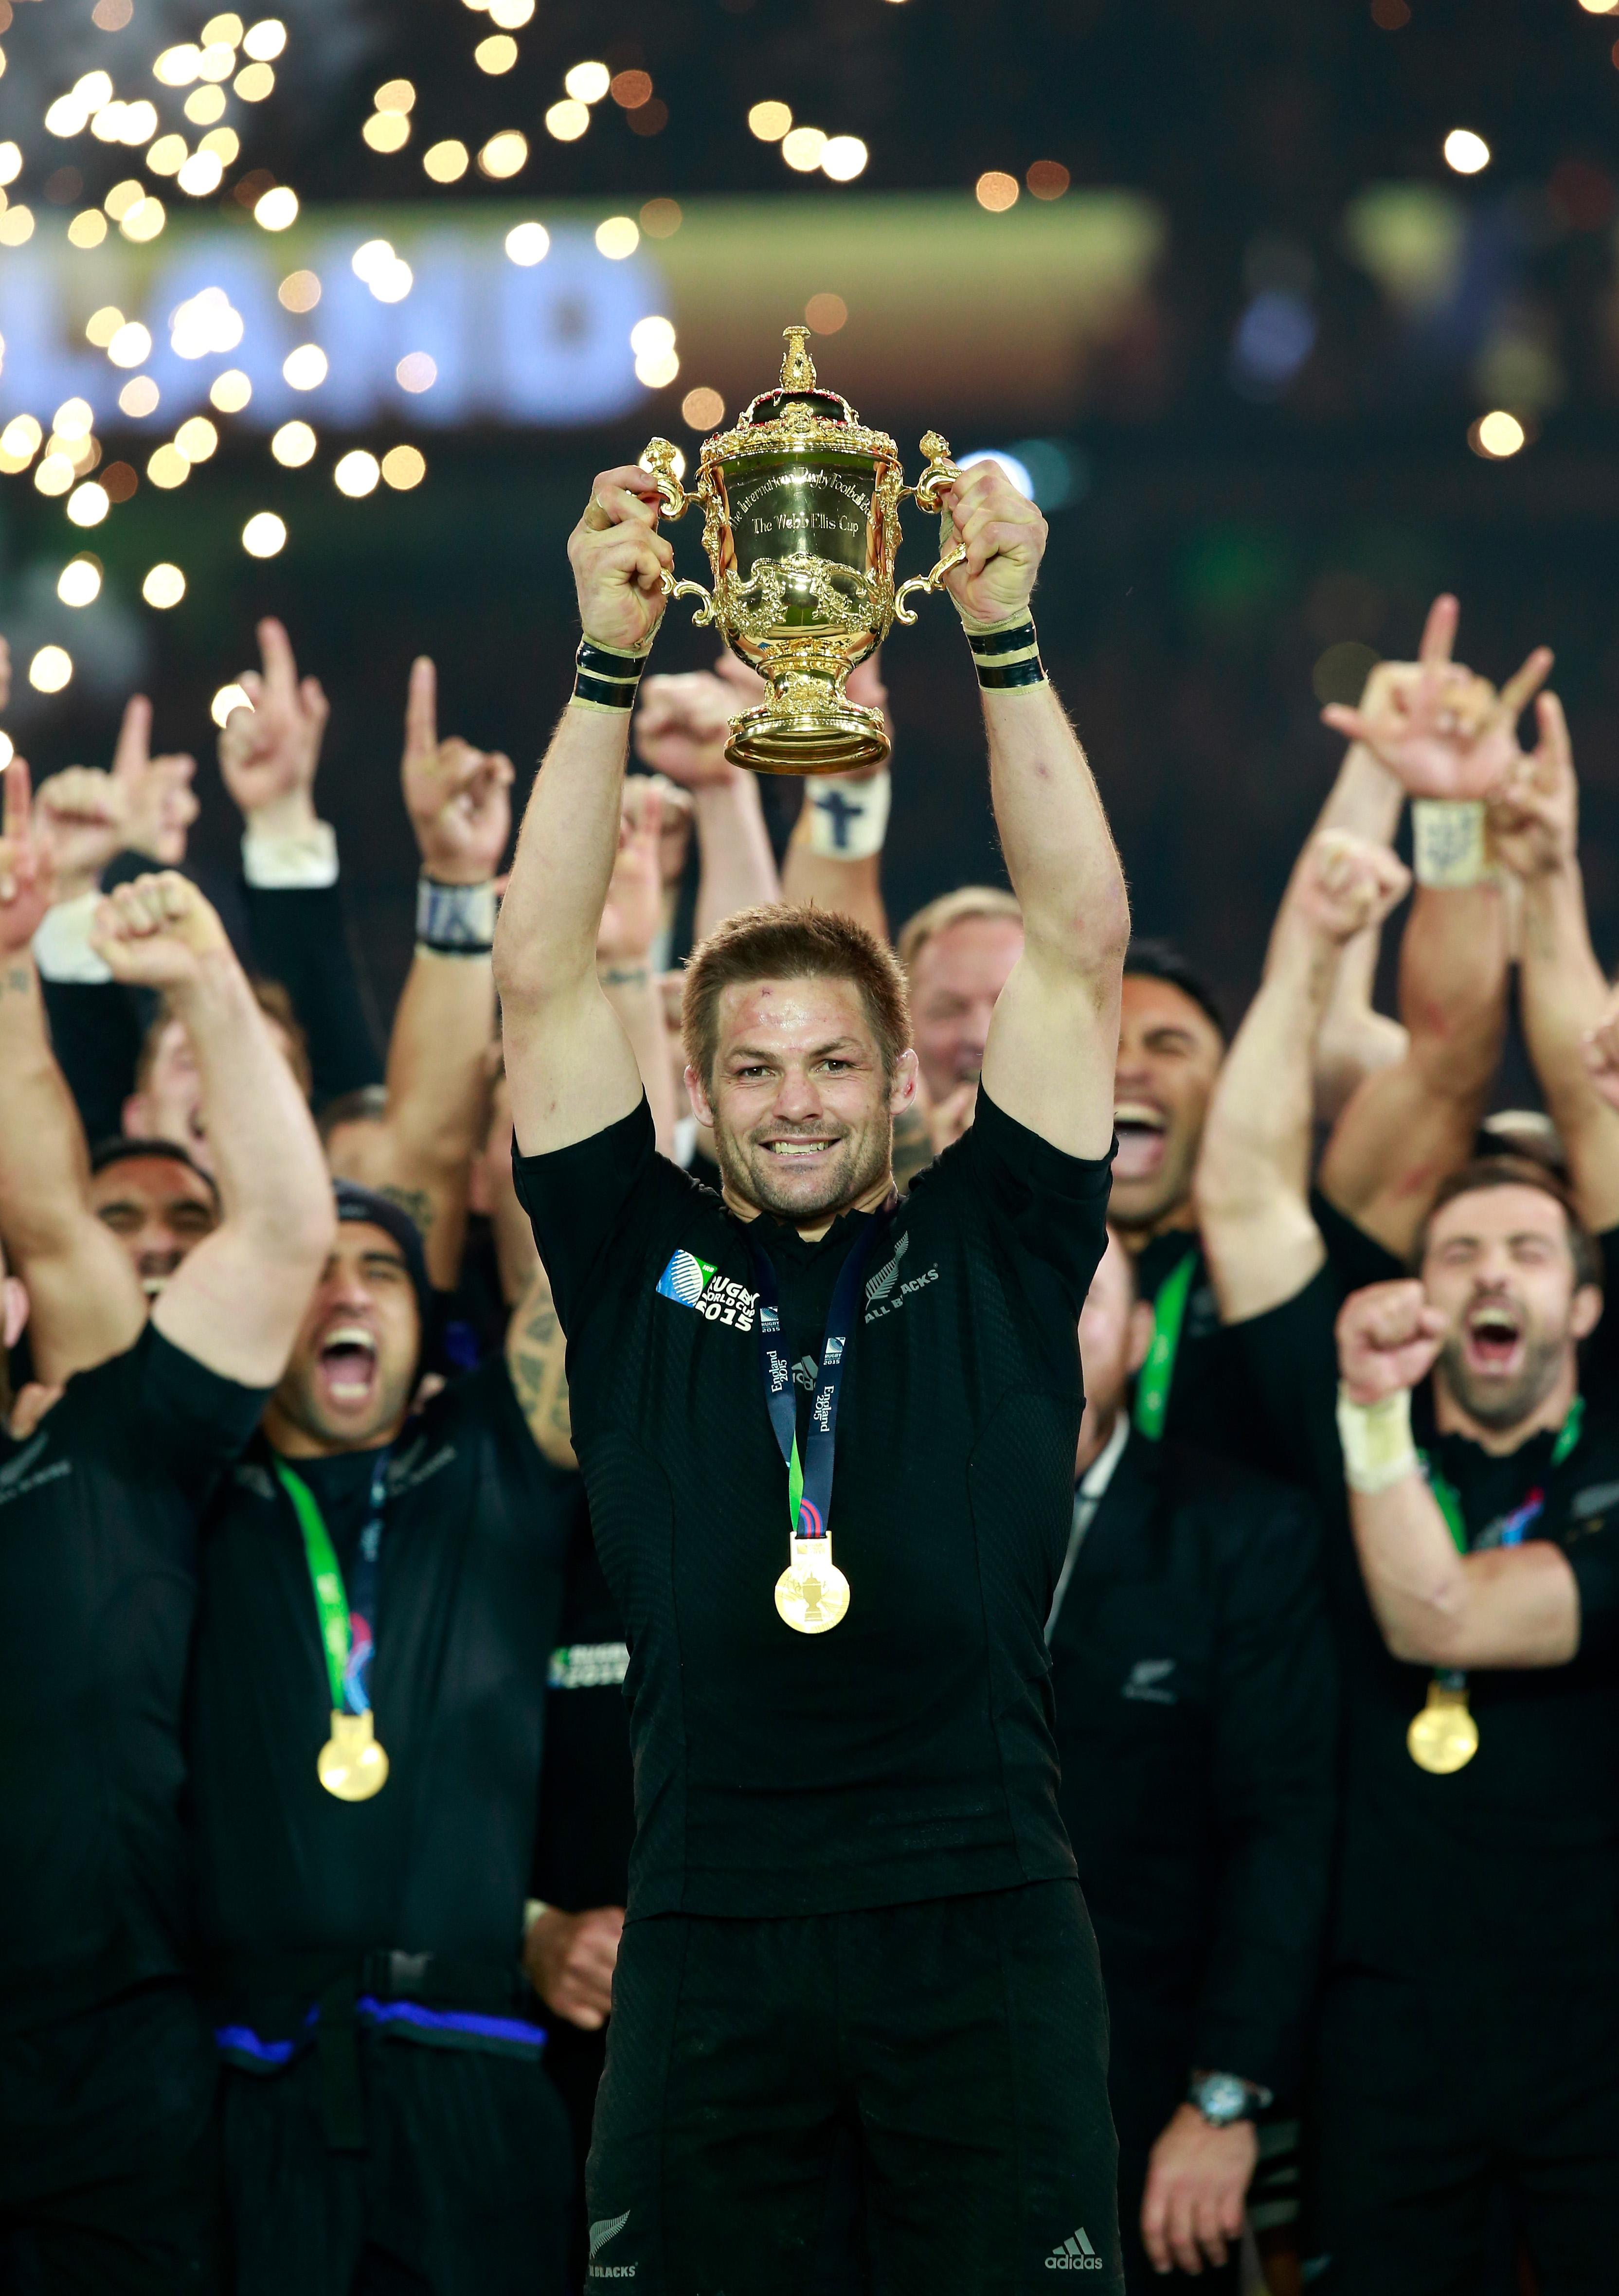 Rwc 2015 Declared Biggest And Best Tournament To Date Copa Del Mundo De Rugby 2019 Rugbyworldcup Com